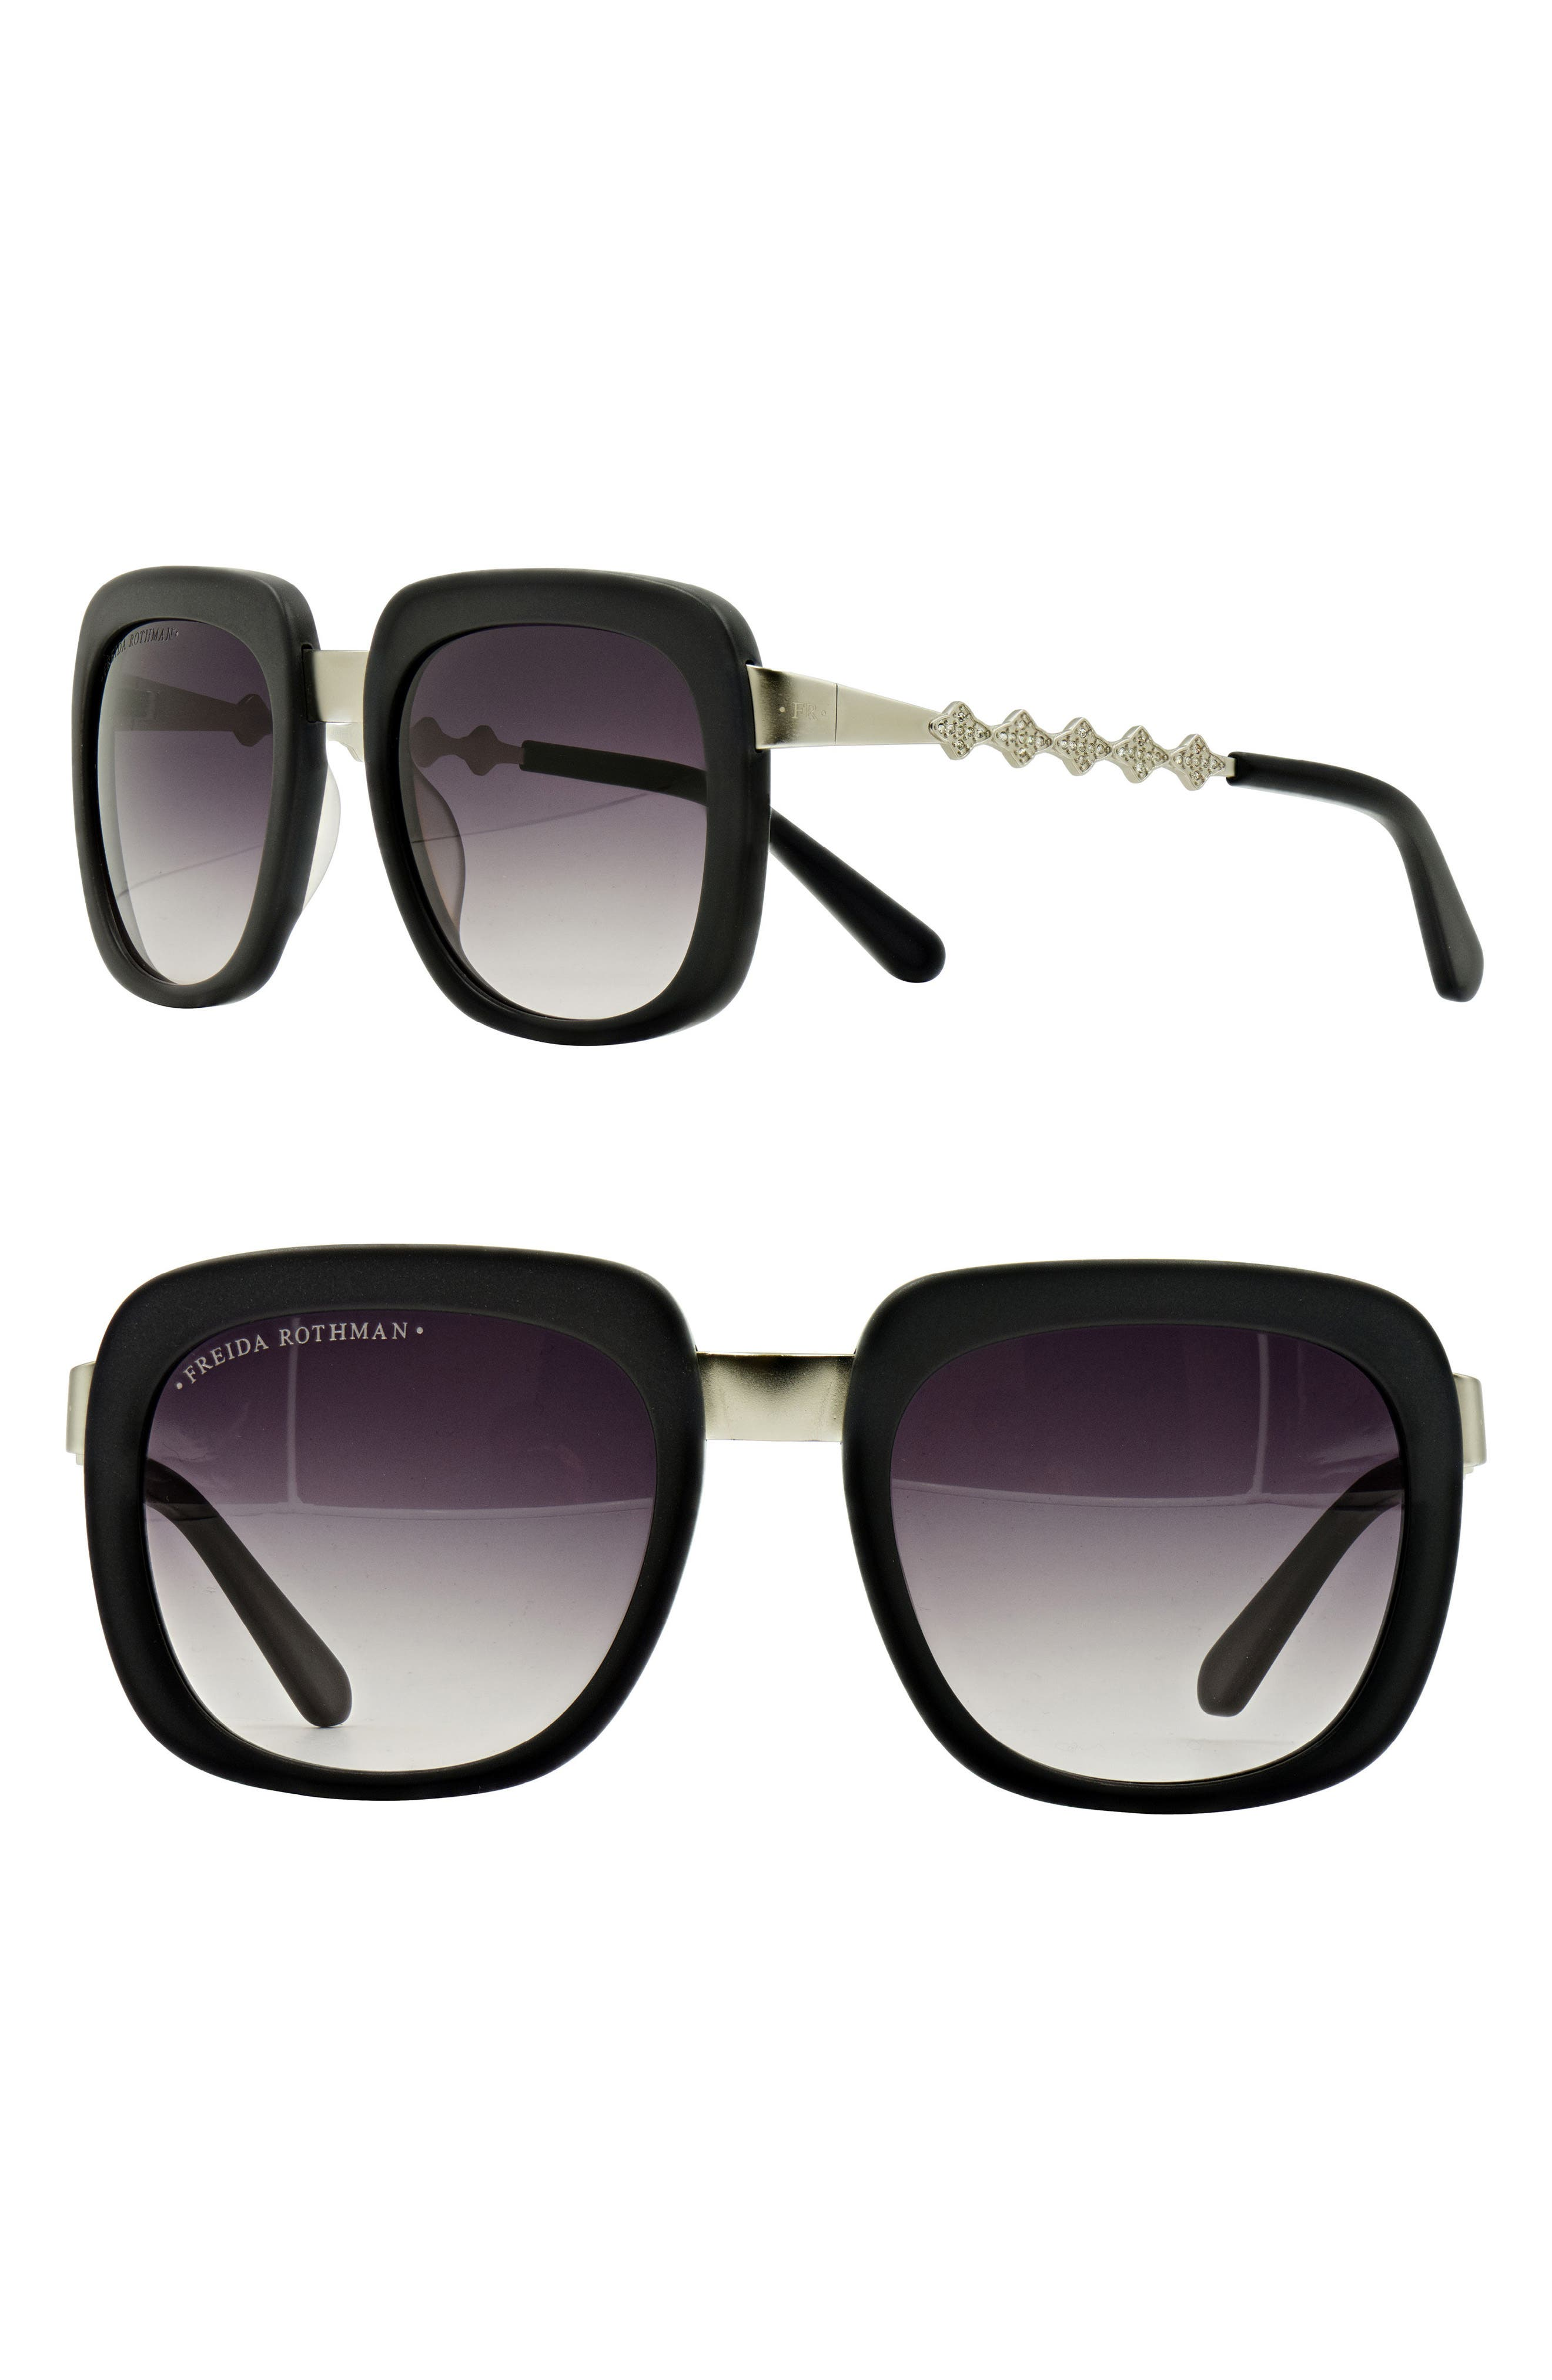 Freida Rothman 'Serena' 57mm Square Sunglasses,                             Main thumbnail 1, color,                             GREY